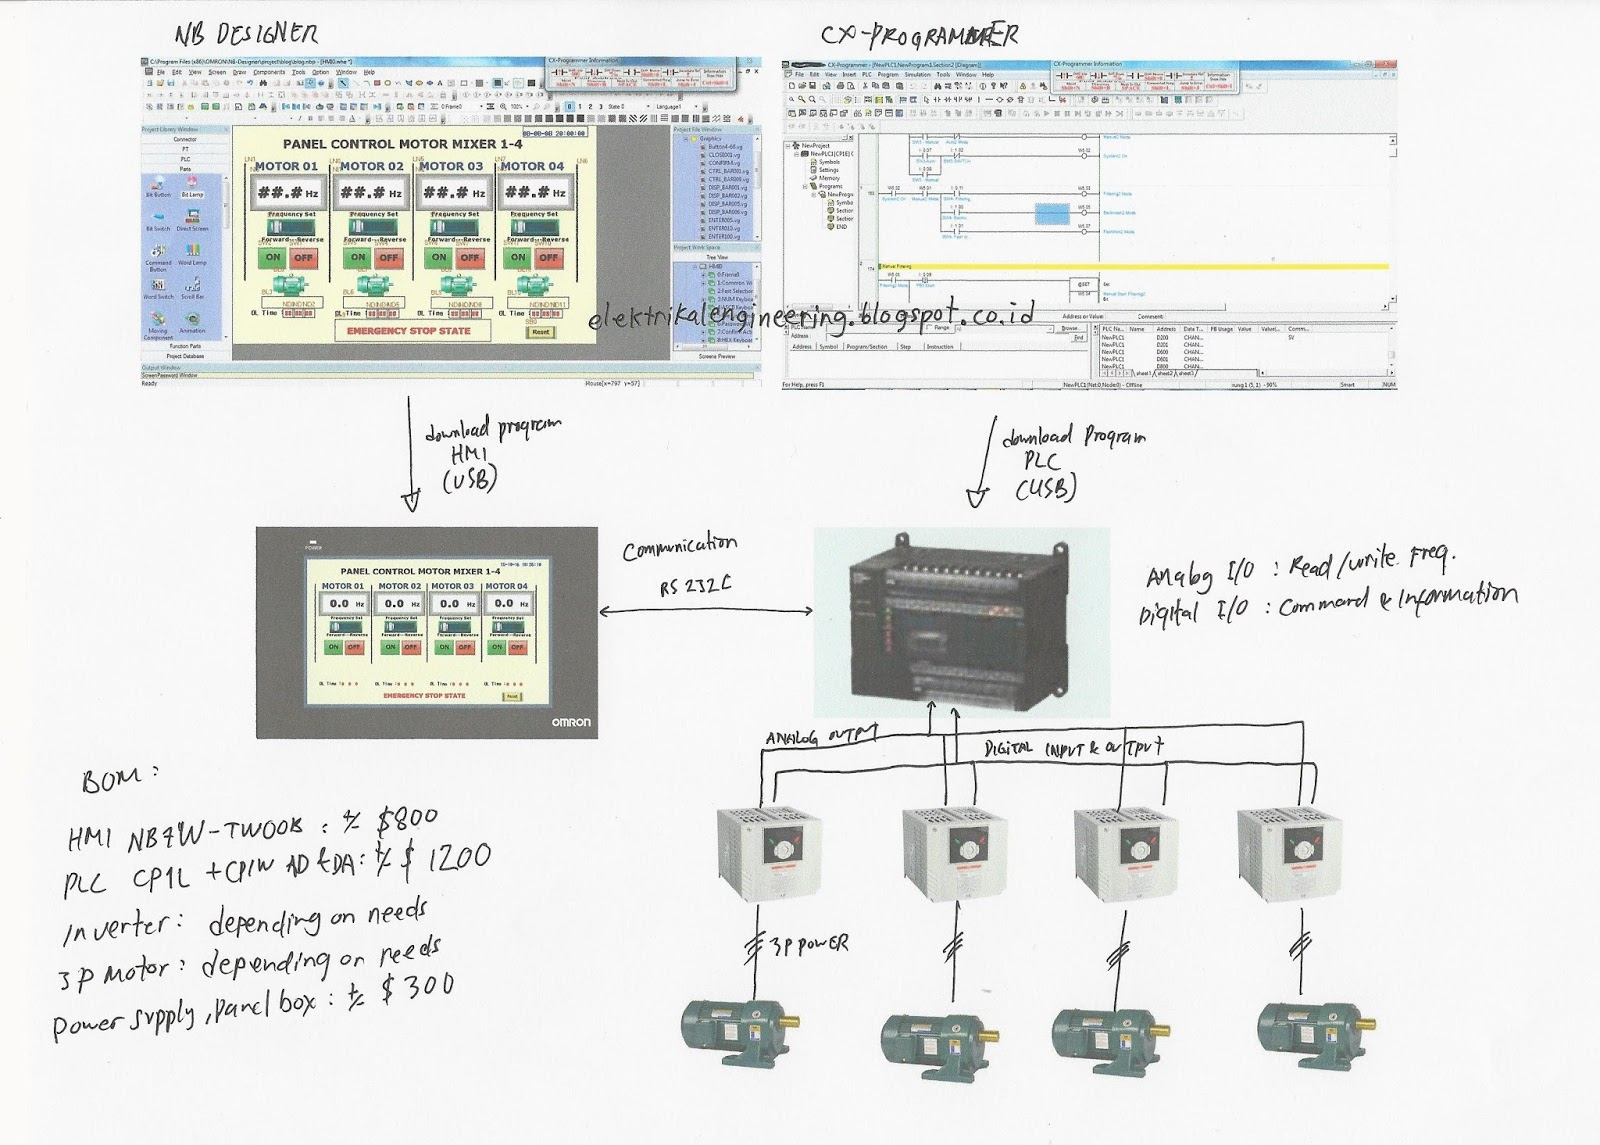 Elektrikal engineer wiring diagram inverter ls plc and hmi for inverter controlled by plc and hmi asfbconference2016 Choice Image